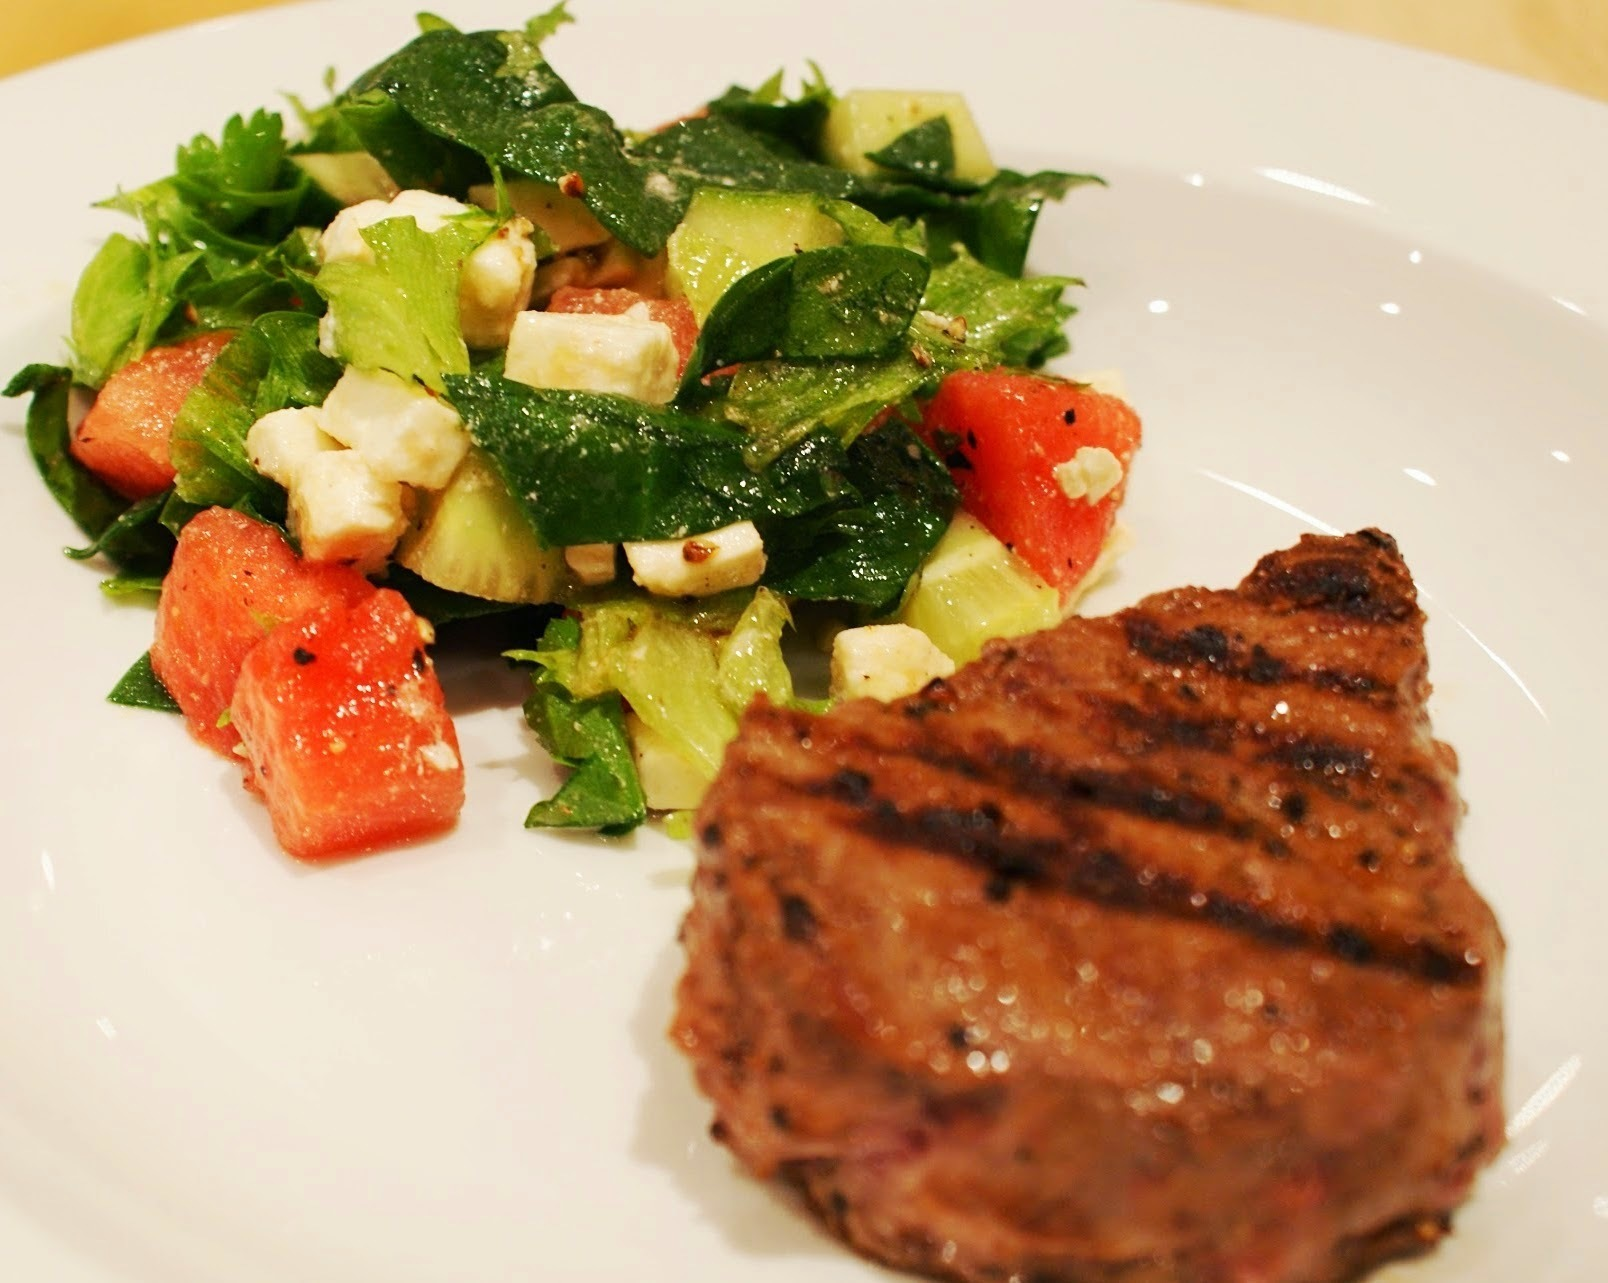 Steak med salat på vandmelon og feta